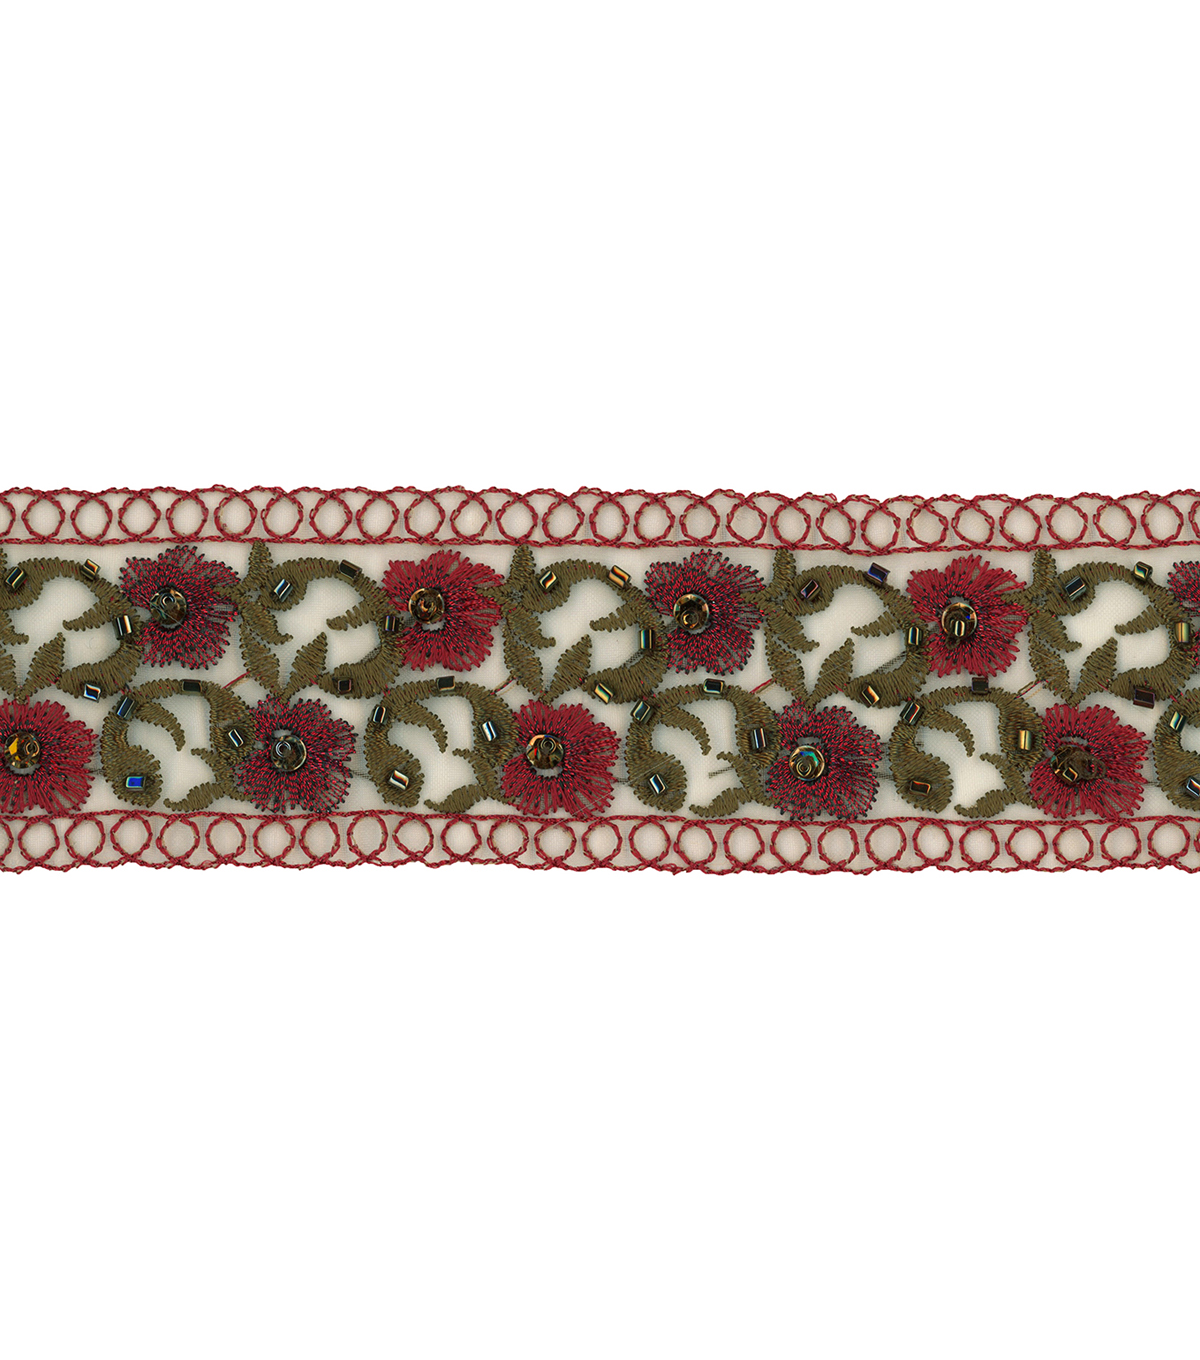 Wrights Trims-1 3/4\u0022 Sage Sheer Band With Beads